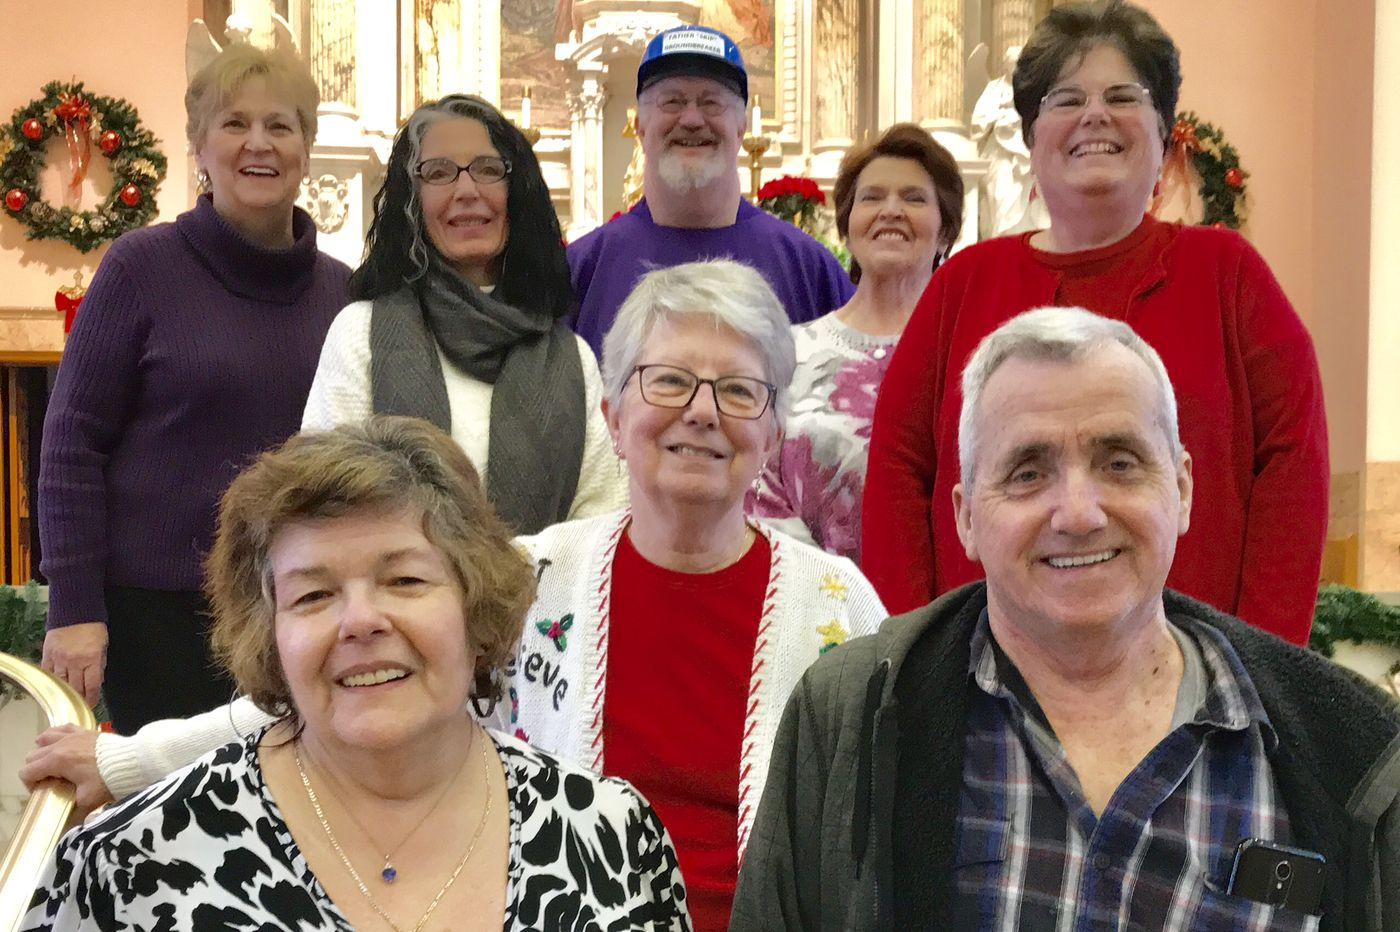 Christmas comes early to St. Anne's, thanks to a casino | Ronnie Polaneczky